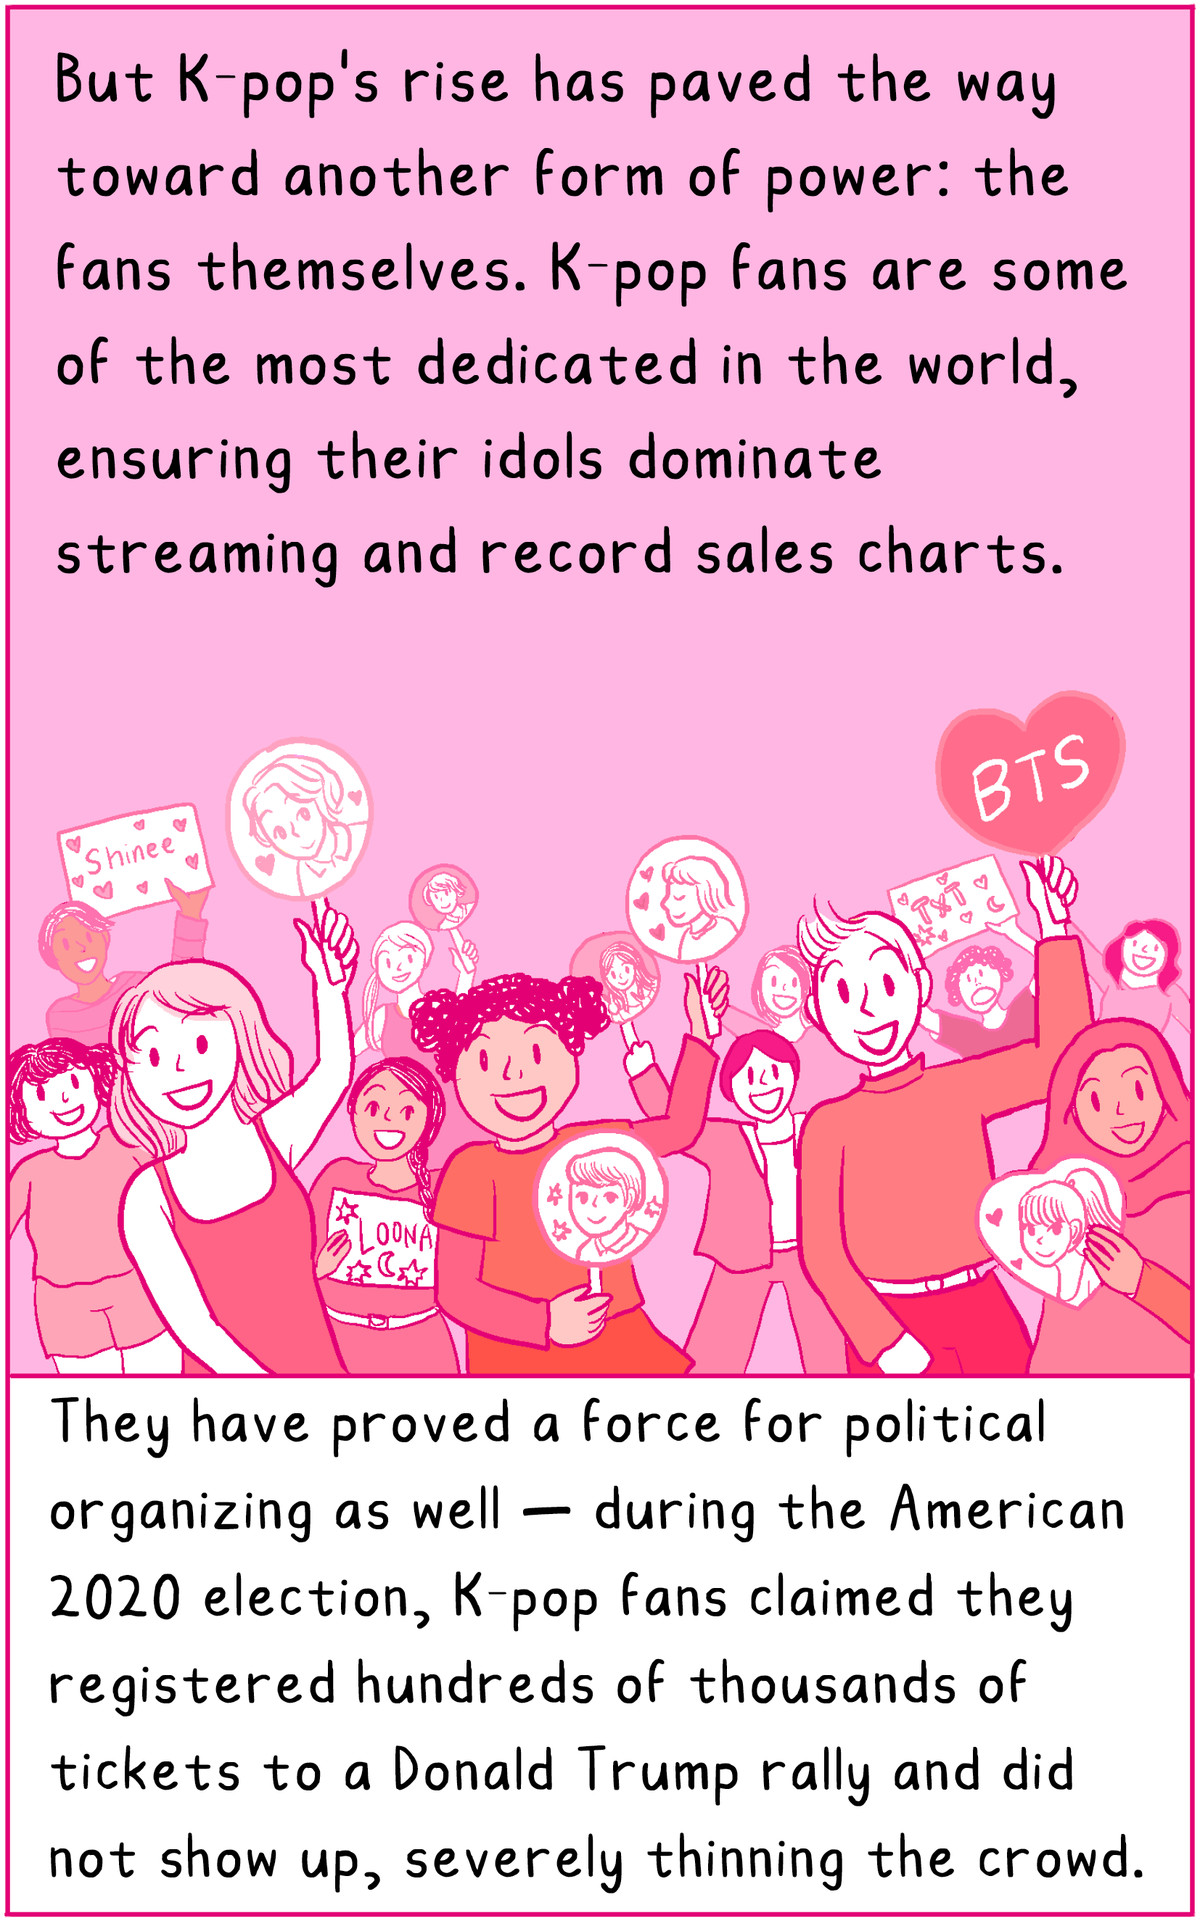 But Kpop's rise has paved the way towards another form of power: the fans themselves. K-pop fans are some of the most dedicated in the world, ensuring their idols dominate streaming and record sales charts. They have proved a force for political organizing as well — during the American 2020 election, K-pop fans claim they registered hundreds of thousands of tickets to a Donald Trump rally and did not show up, severely thinning the crowd.